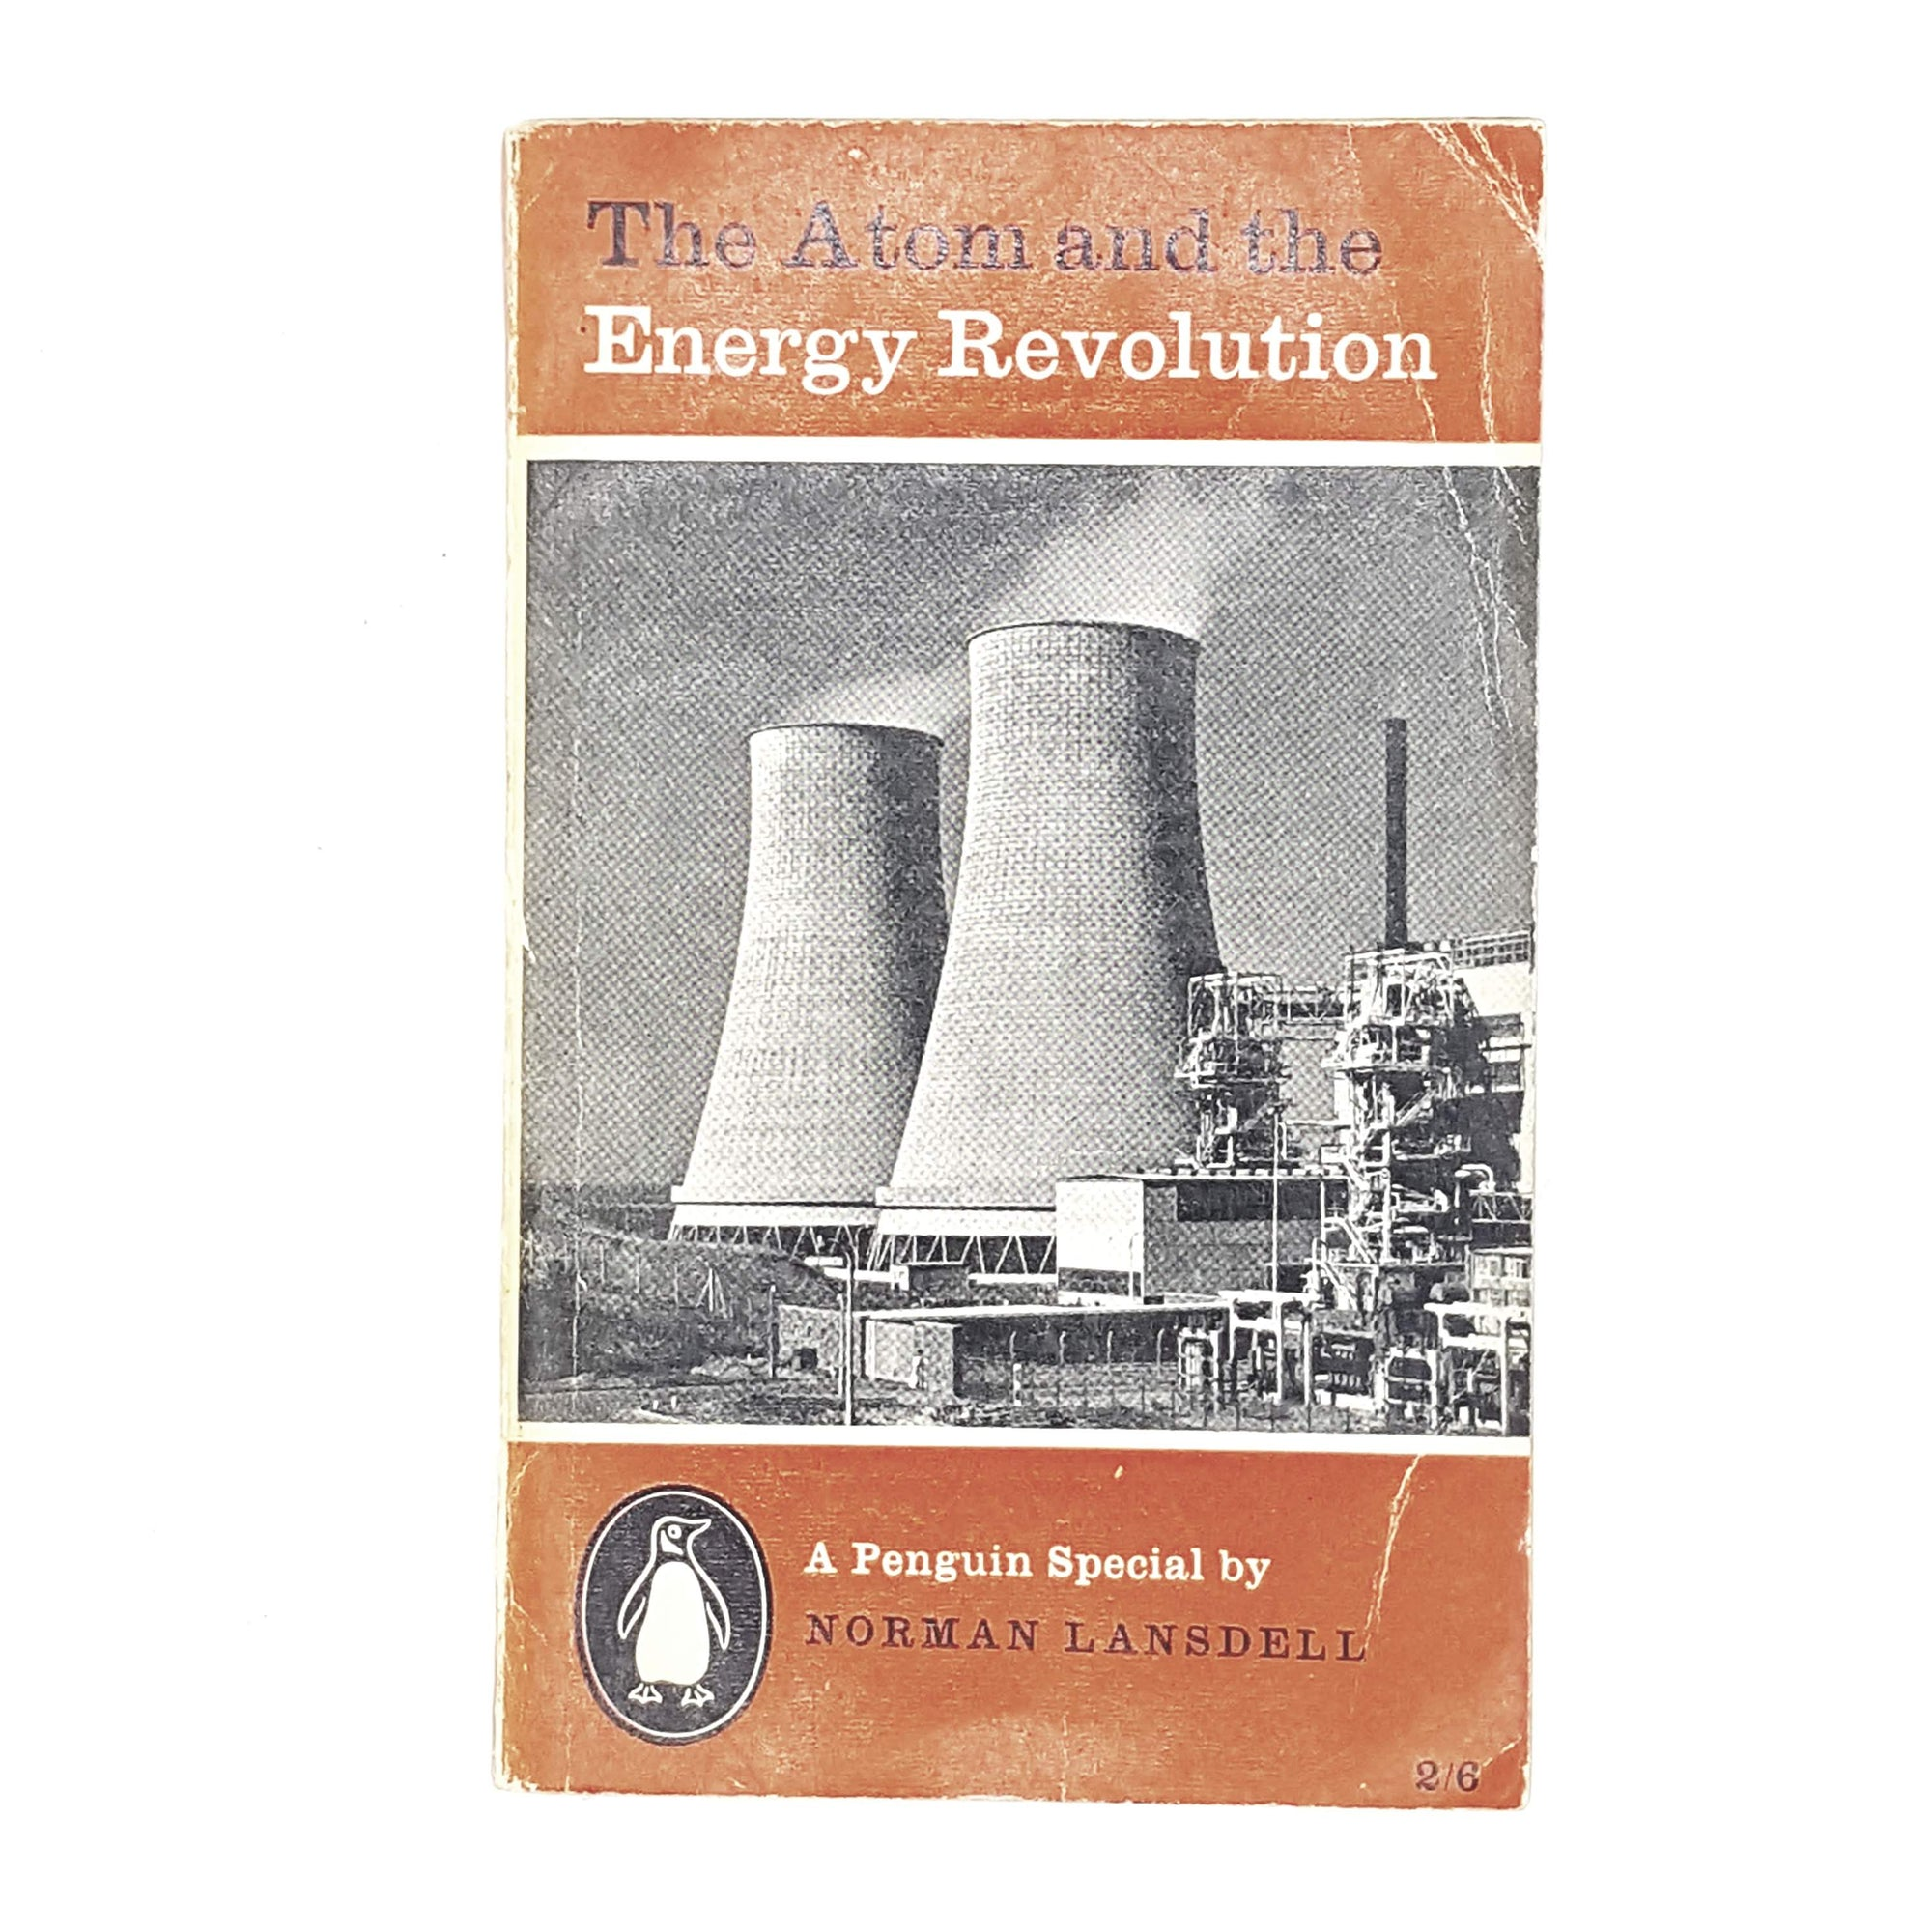 The Atom and the Energy Revolution by Norman Lansdell 1958